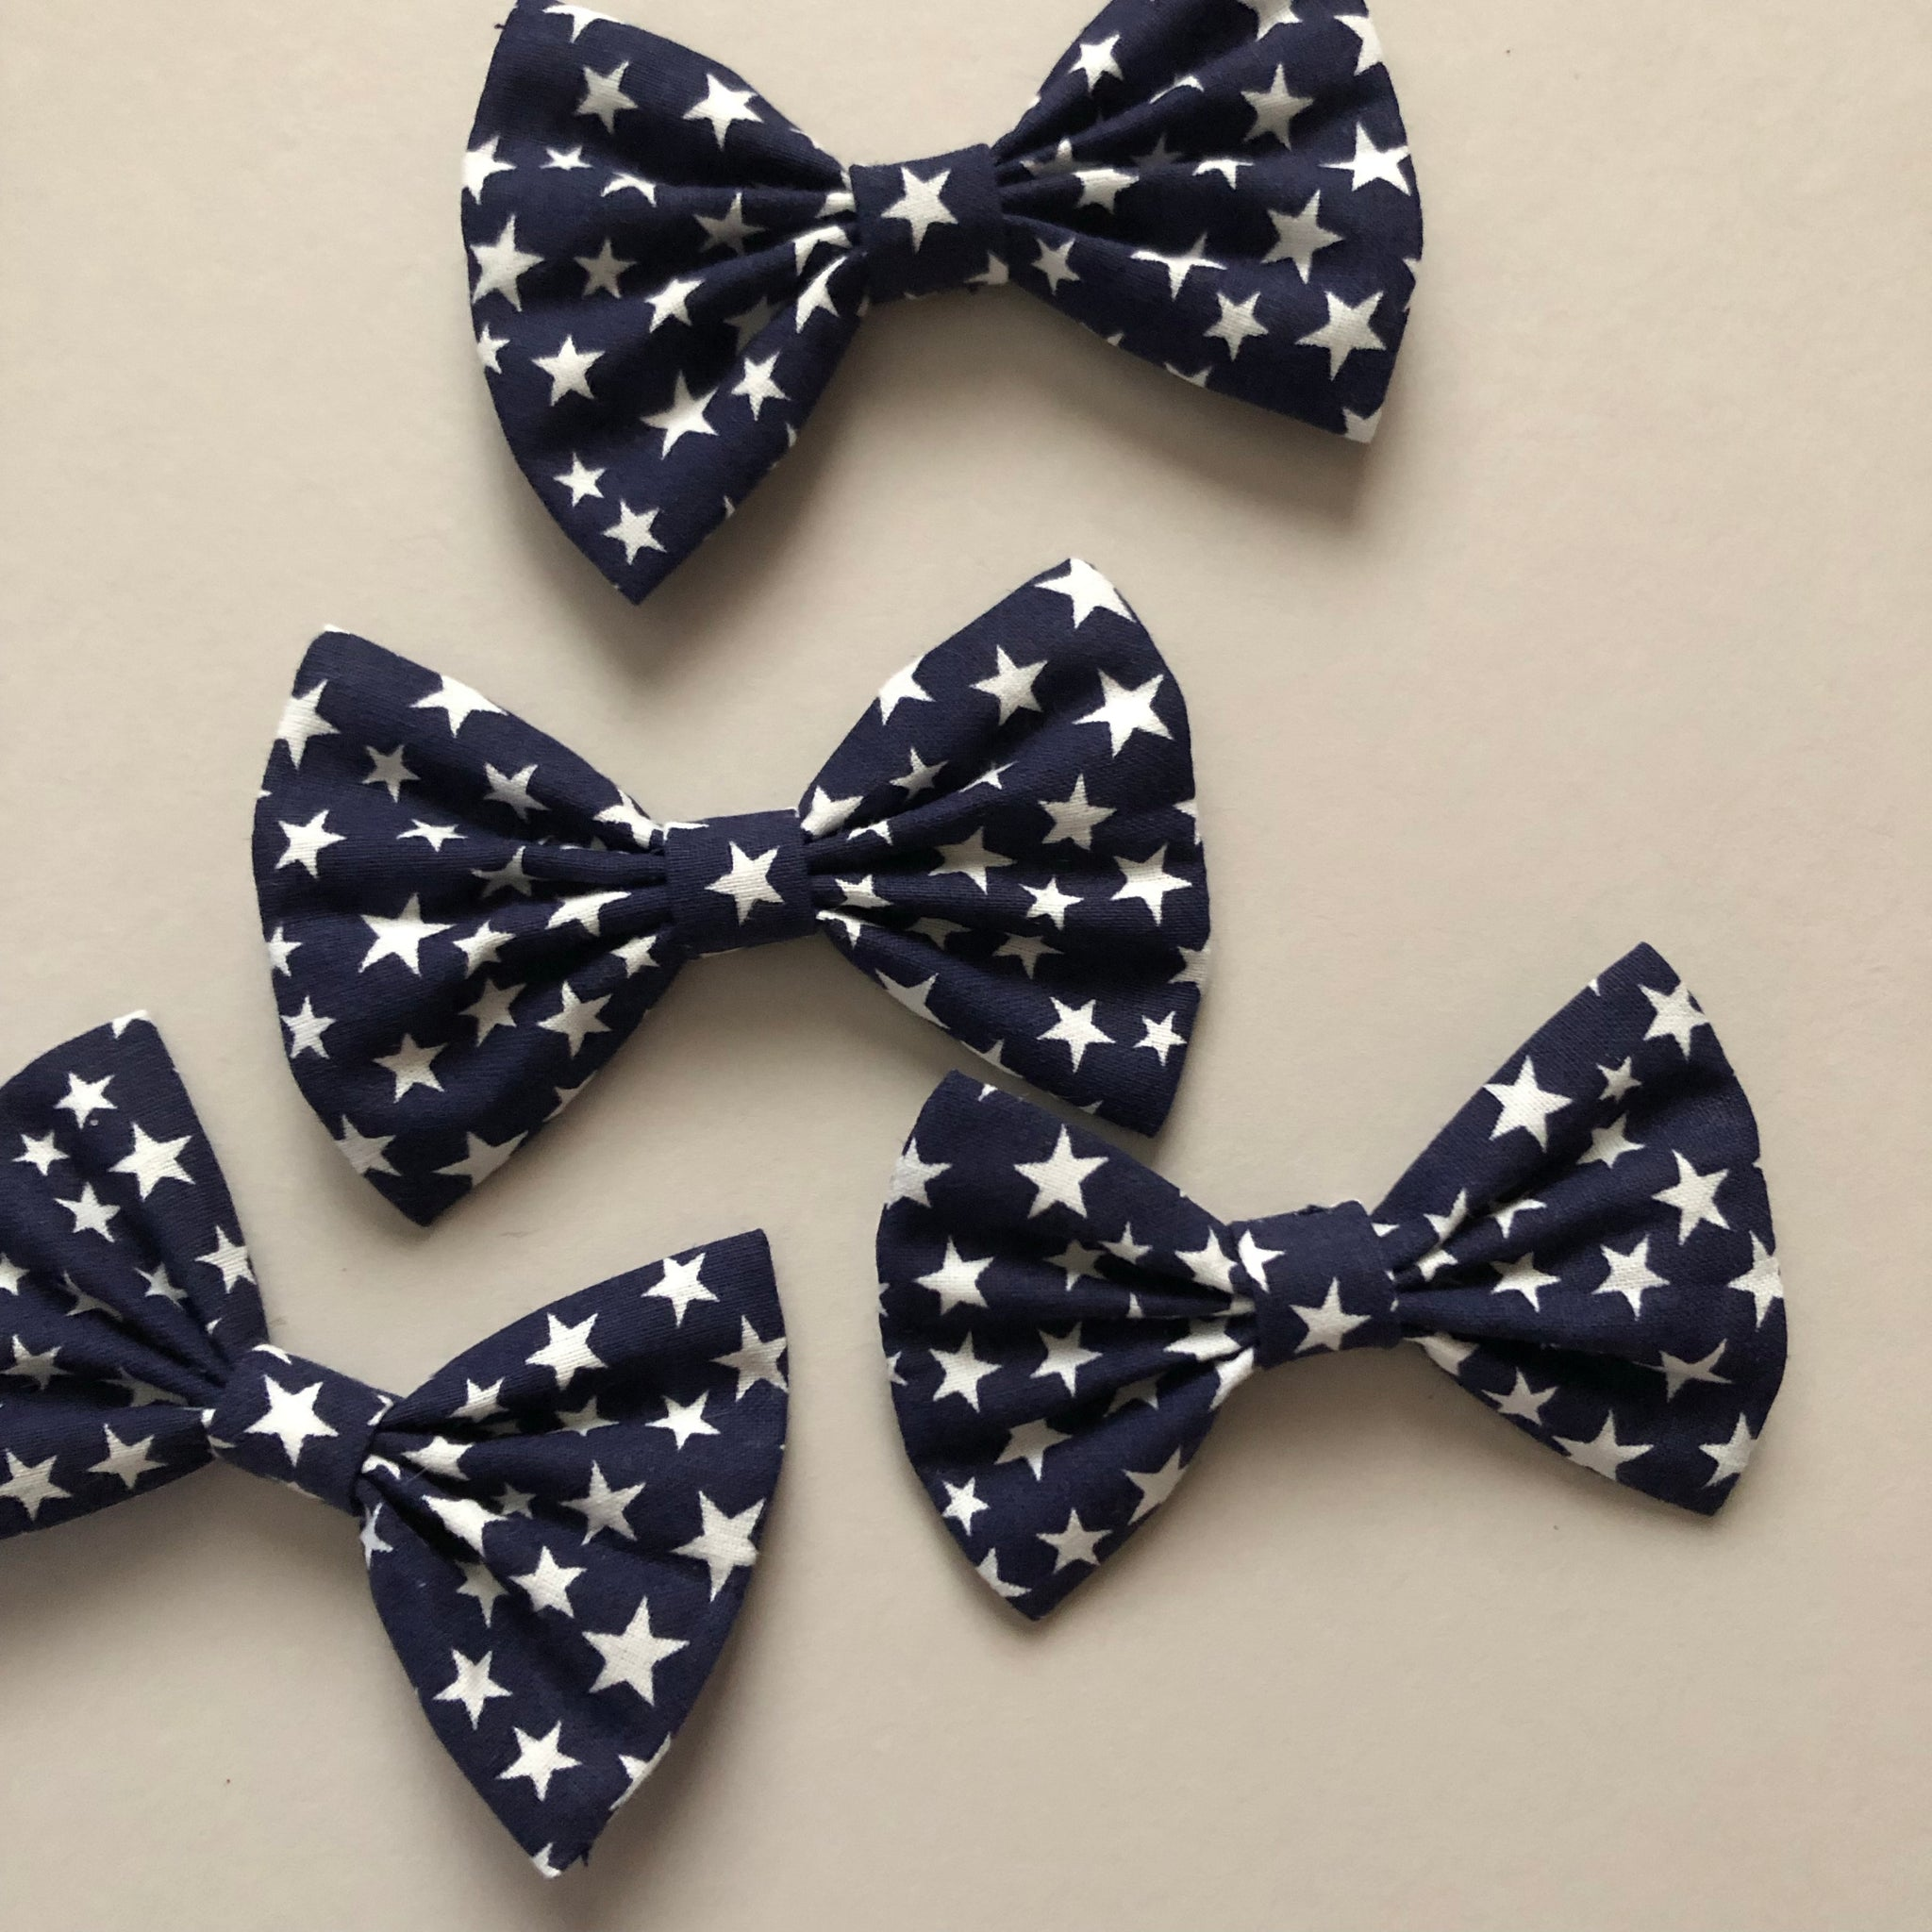 Blue stars bow tie - 3 inch